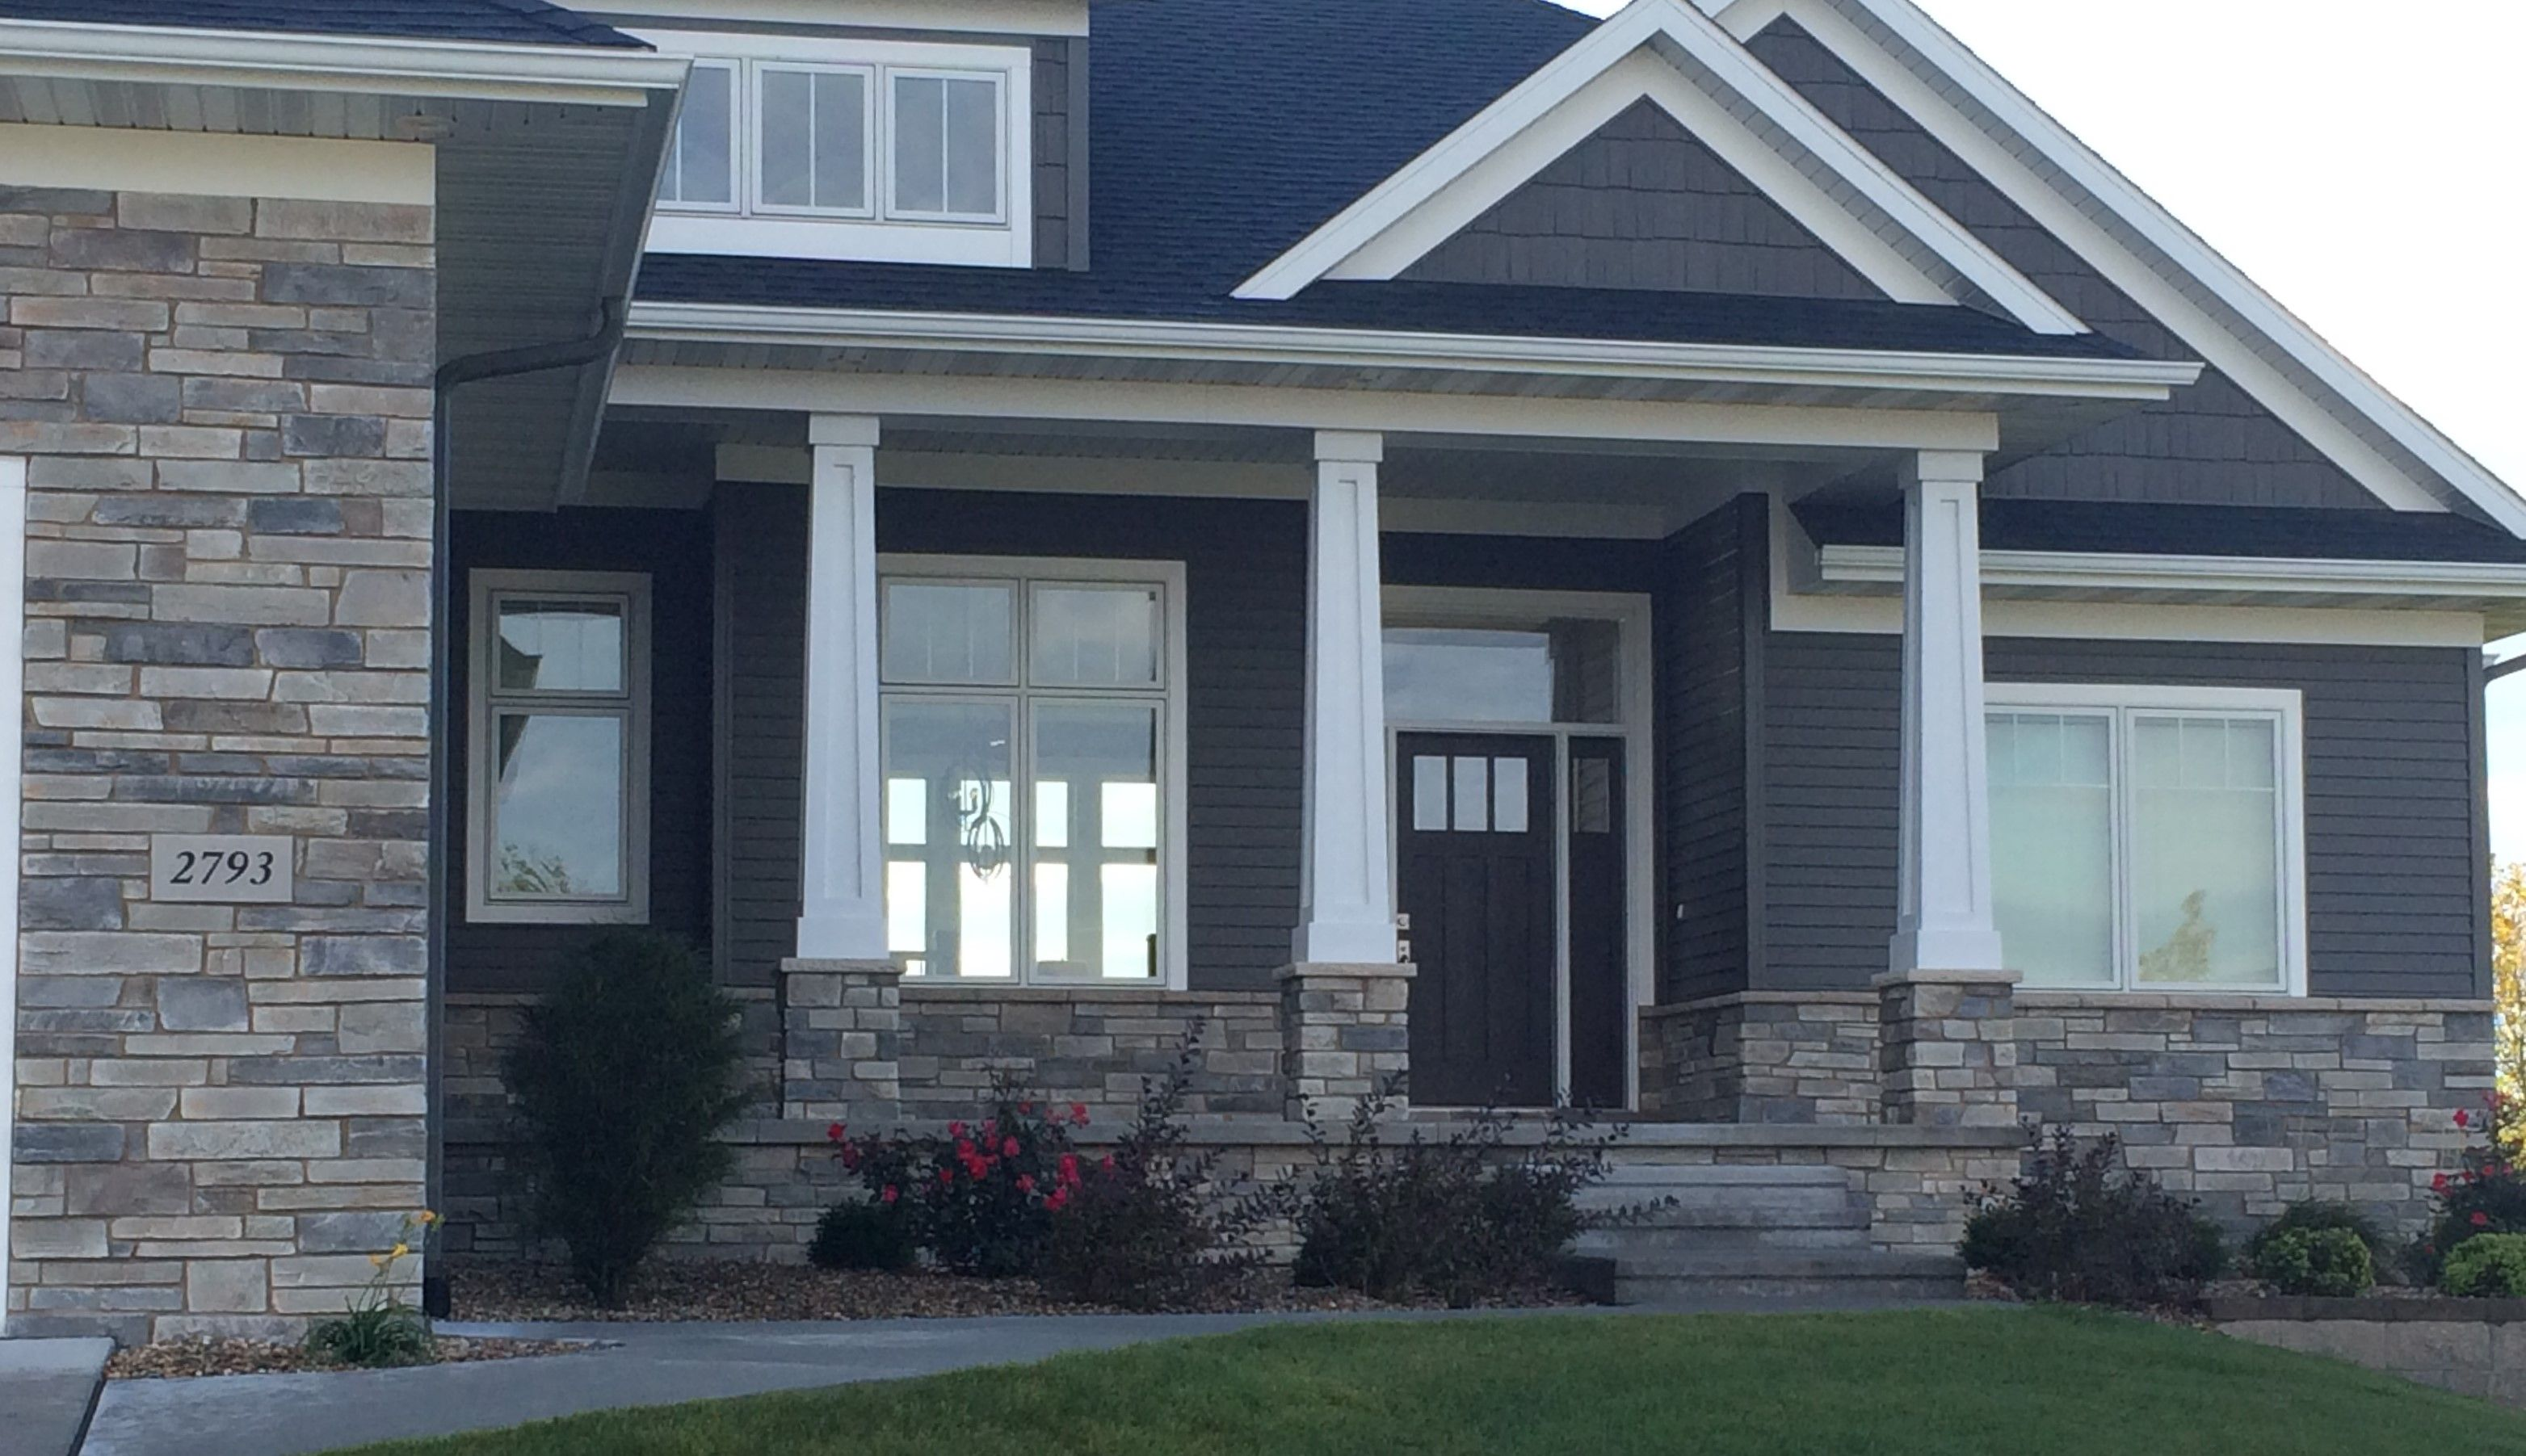 Boral echo ridge country ledgestone exterior colors for Exterior ledgestone